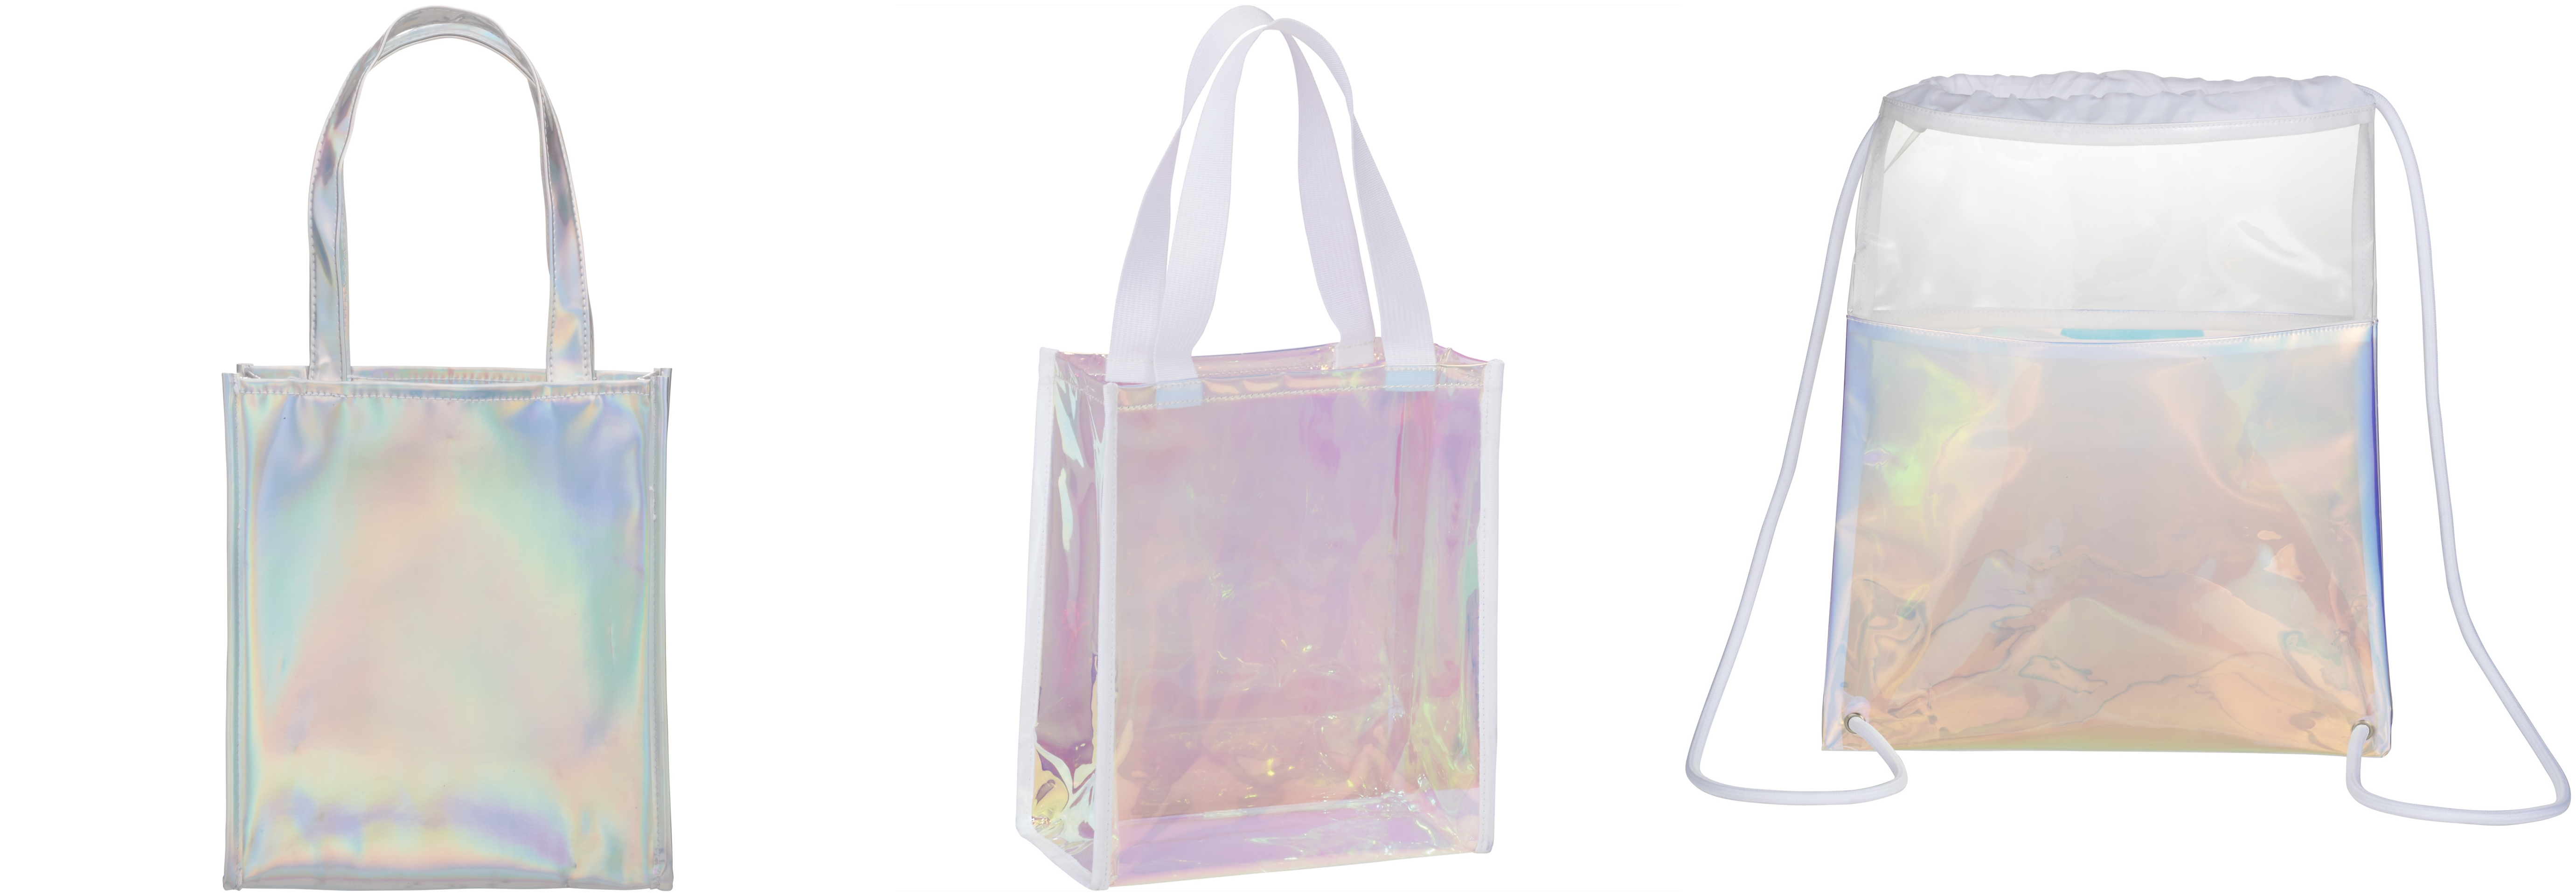 Iridescent and Holographic Print Bags from NYFifth